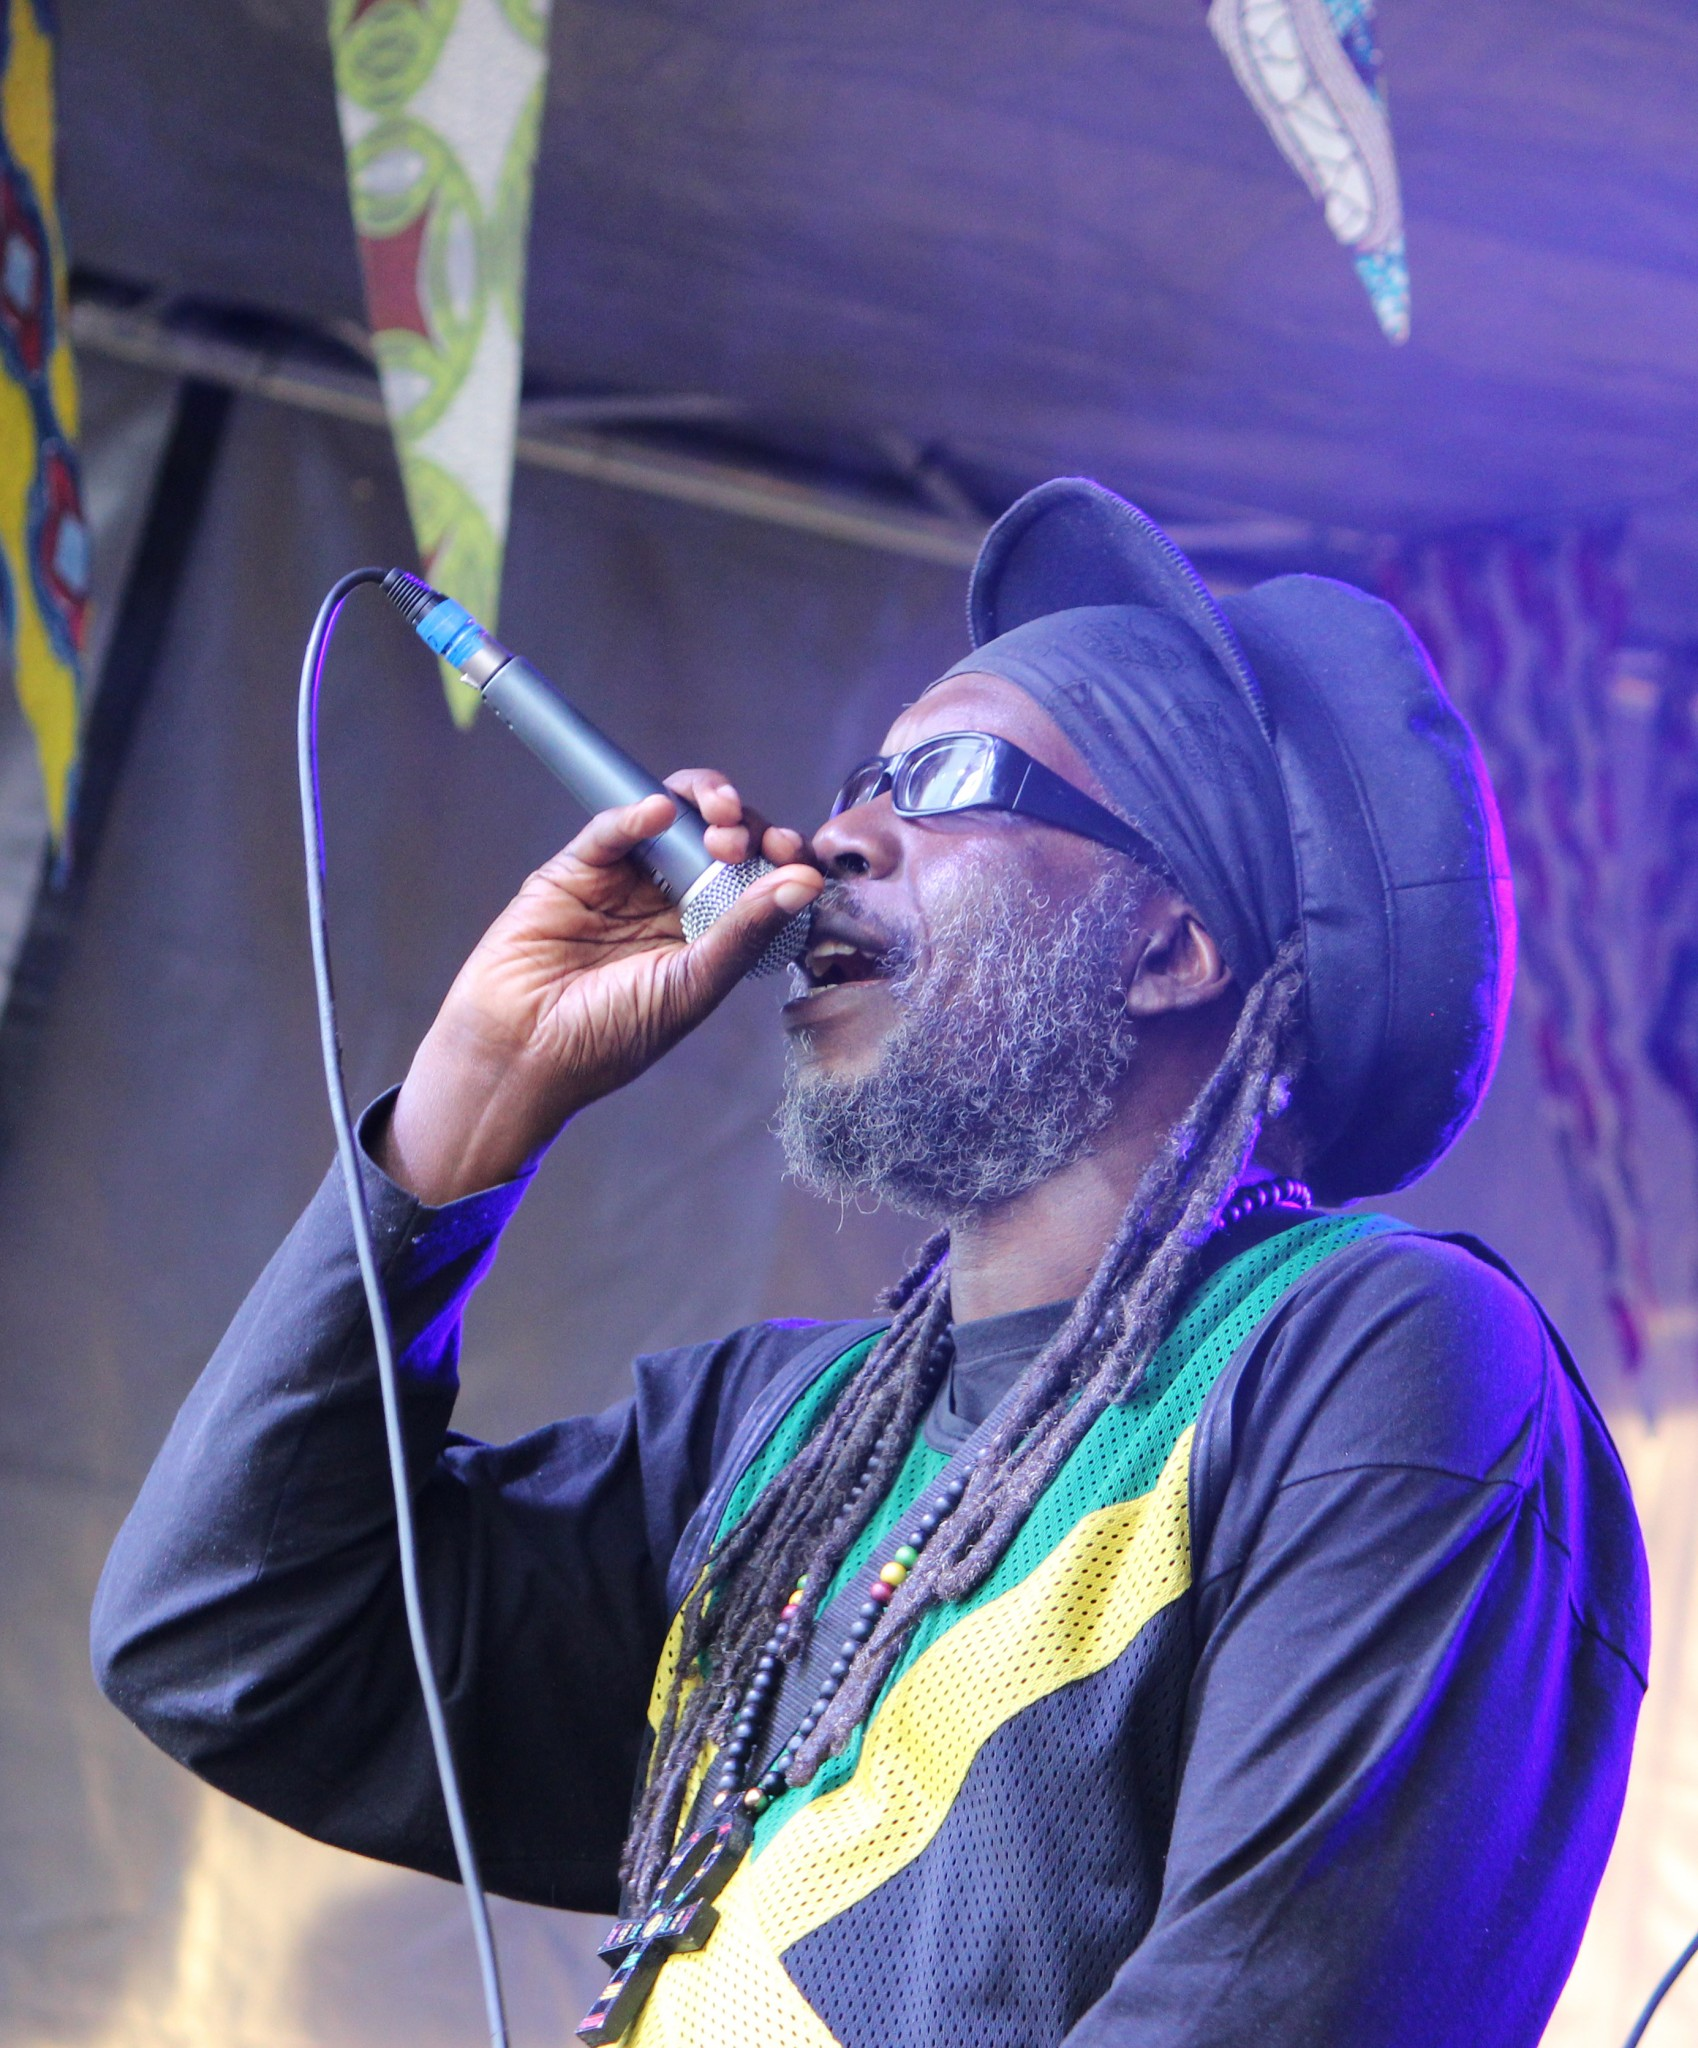 Macka B on stage at One Love 2015